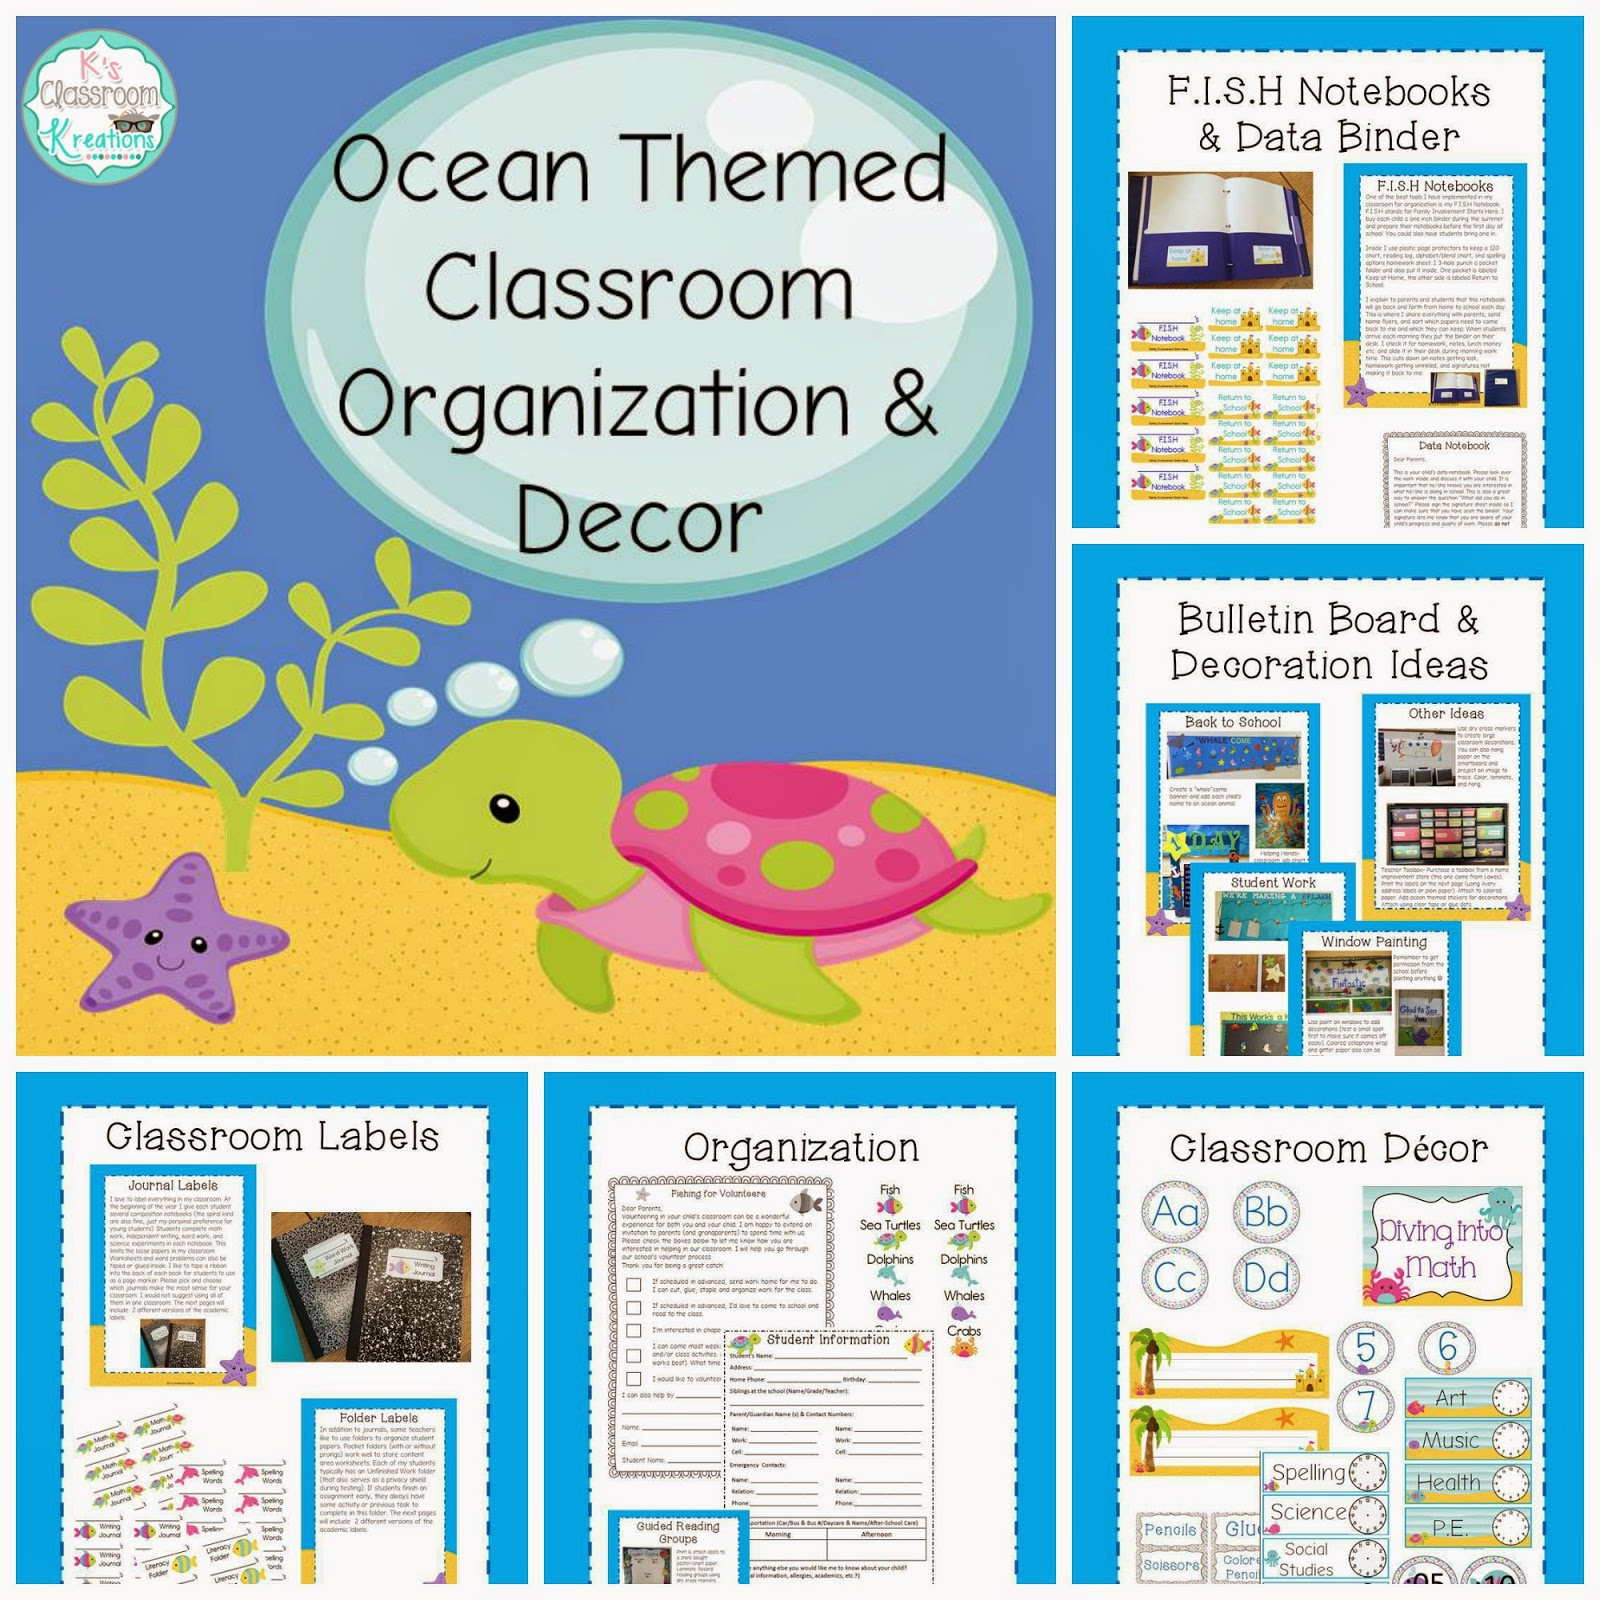 http://www.teacherspayteachers.com/Product/Ocean-Themed-Classroom-Decor-Organization-1384675